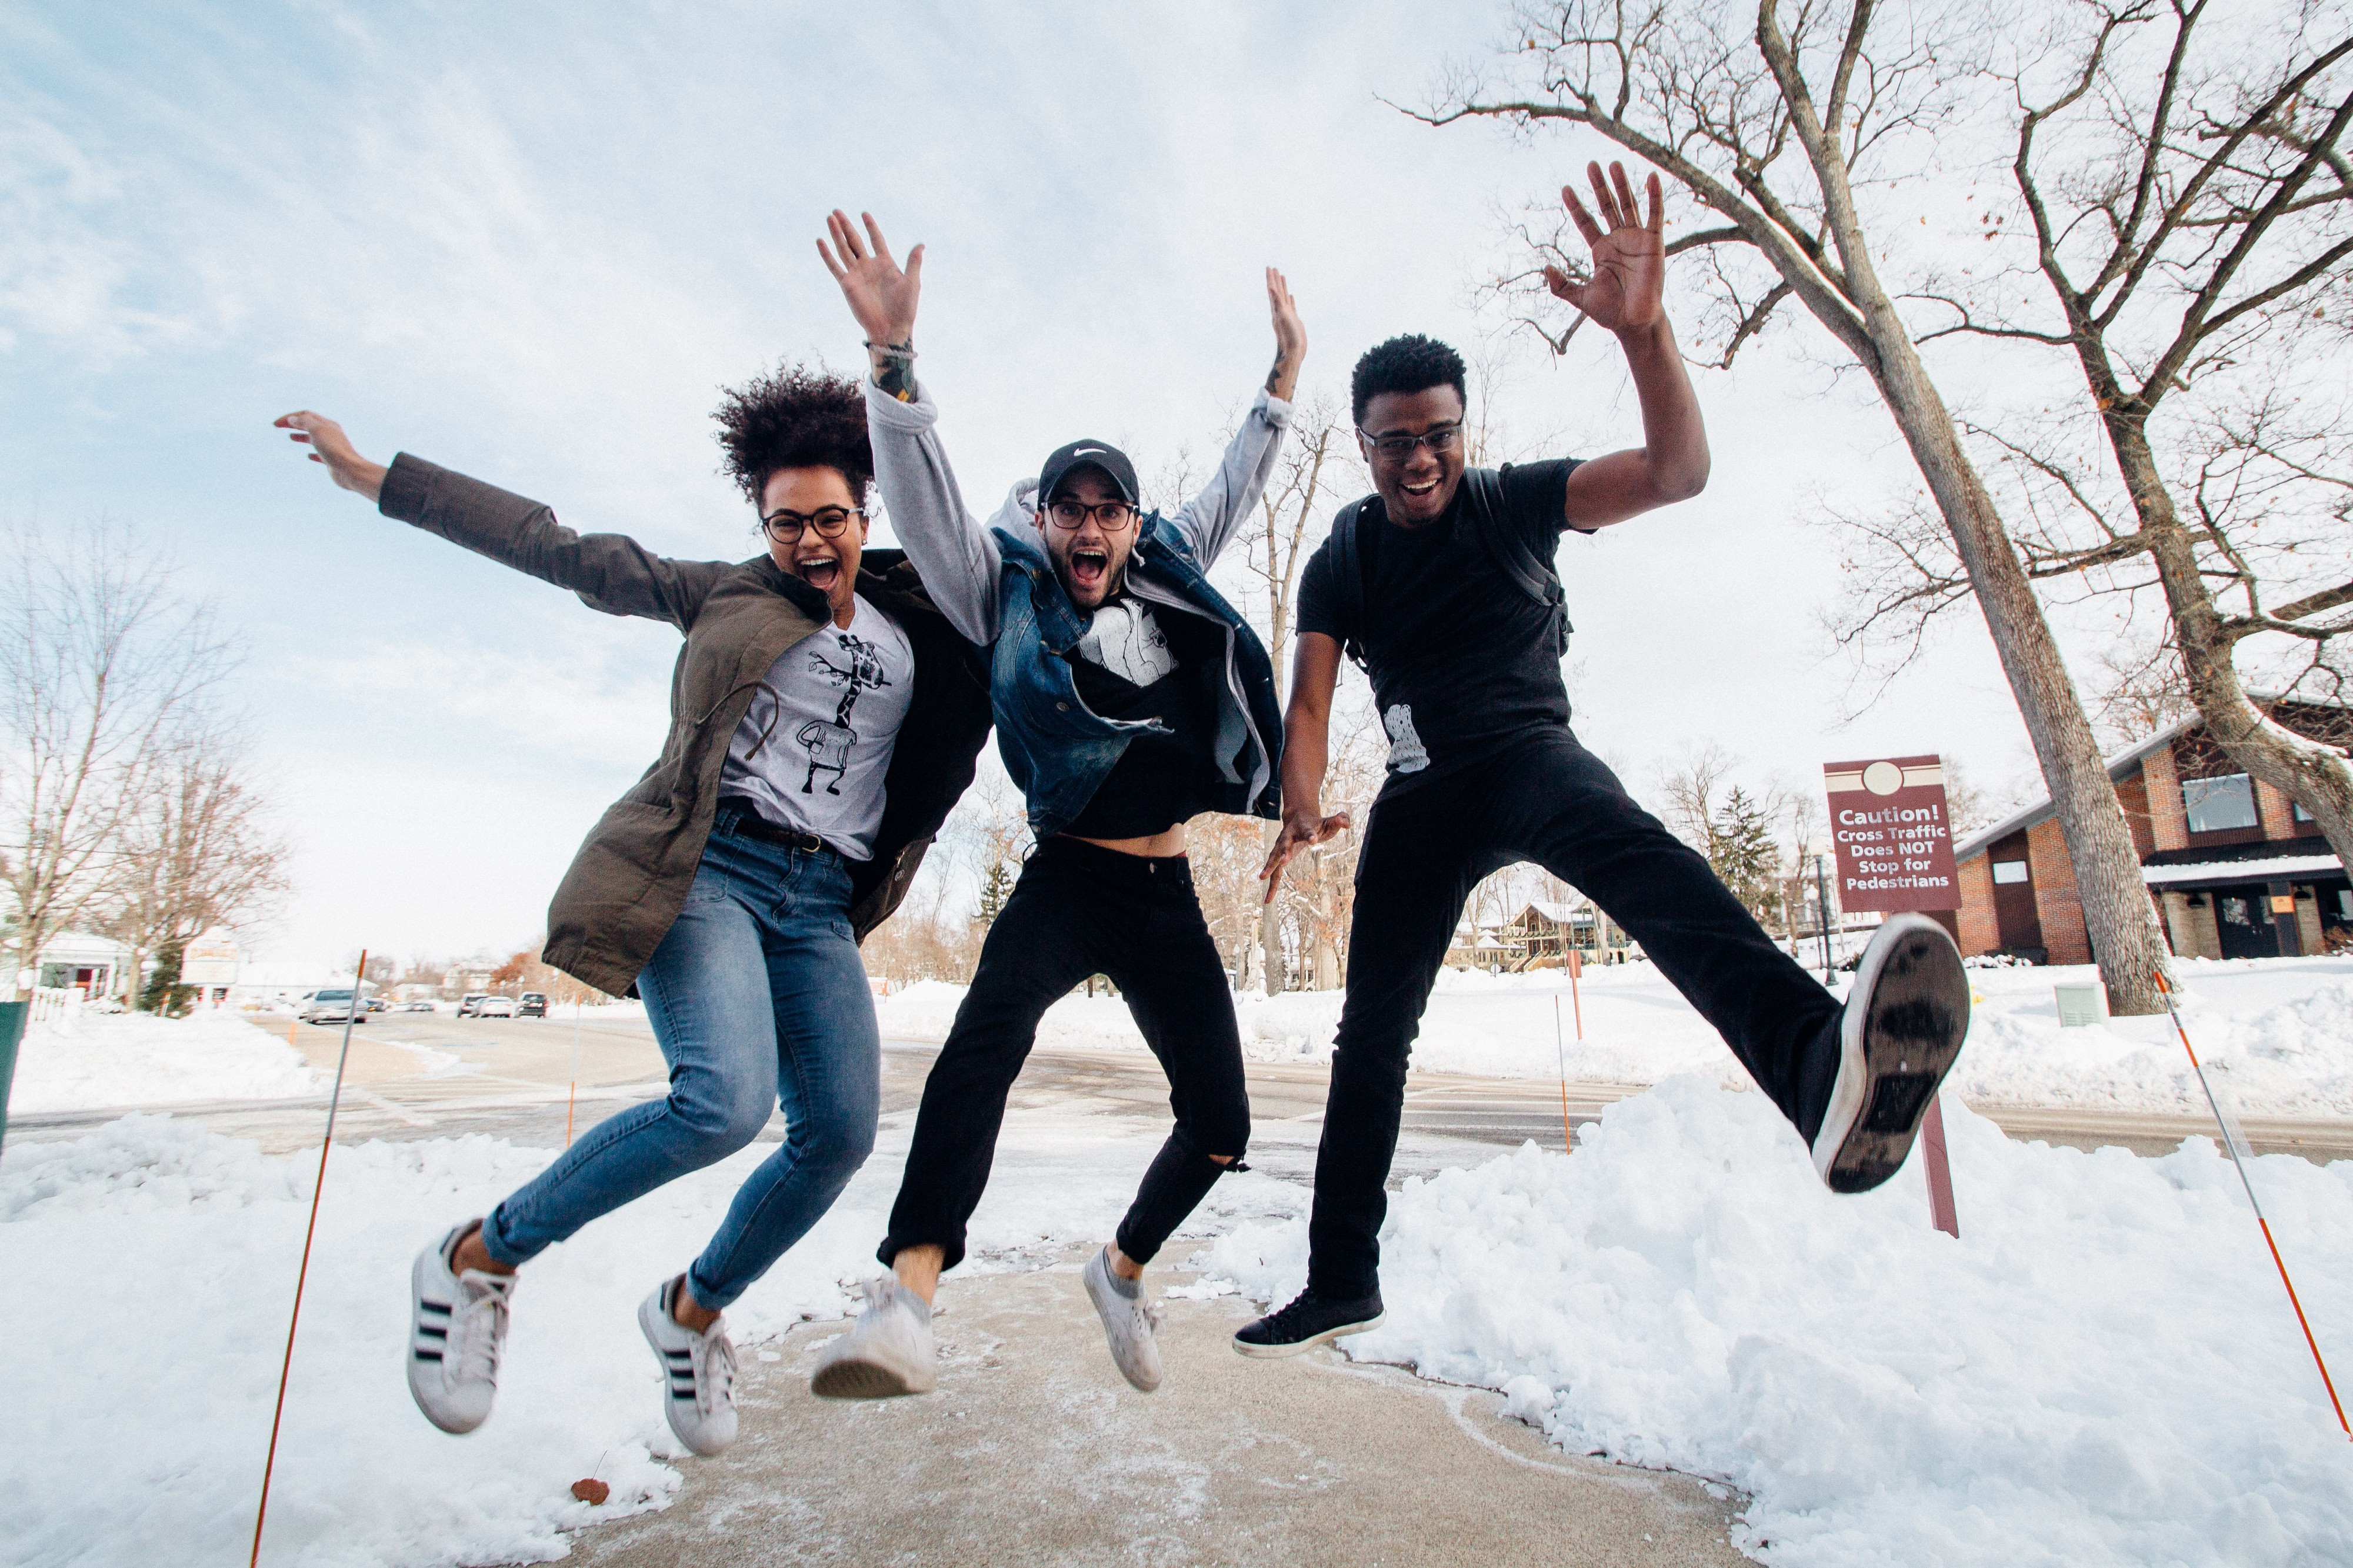 Photo of three men jumping on ground near bare trees during daytime. Credit: Zachary Nelson from Unsplash.com